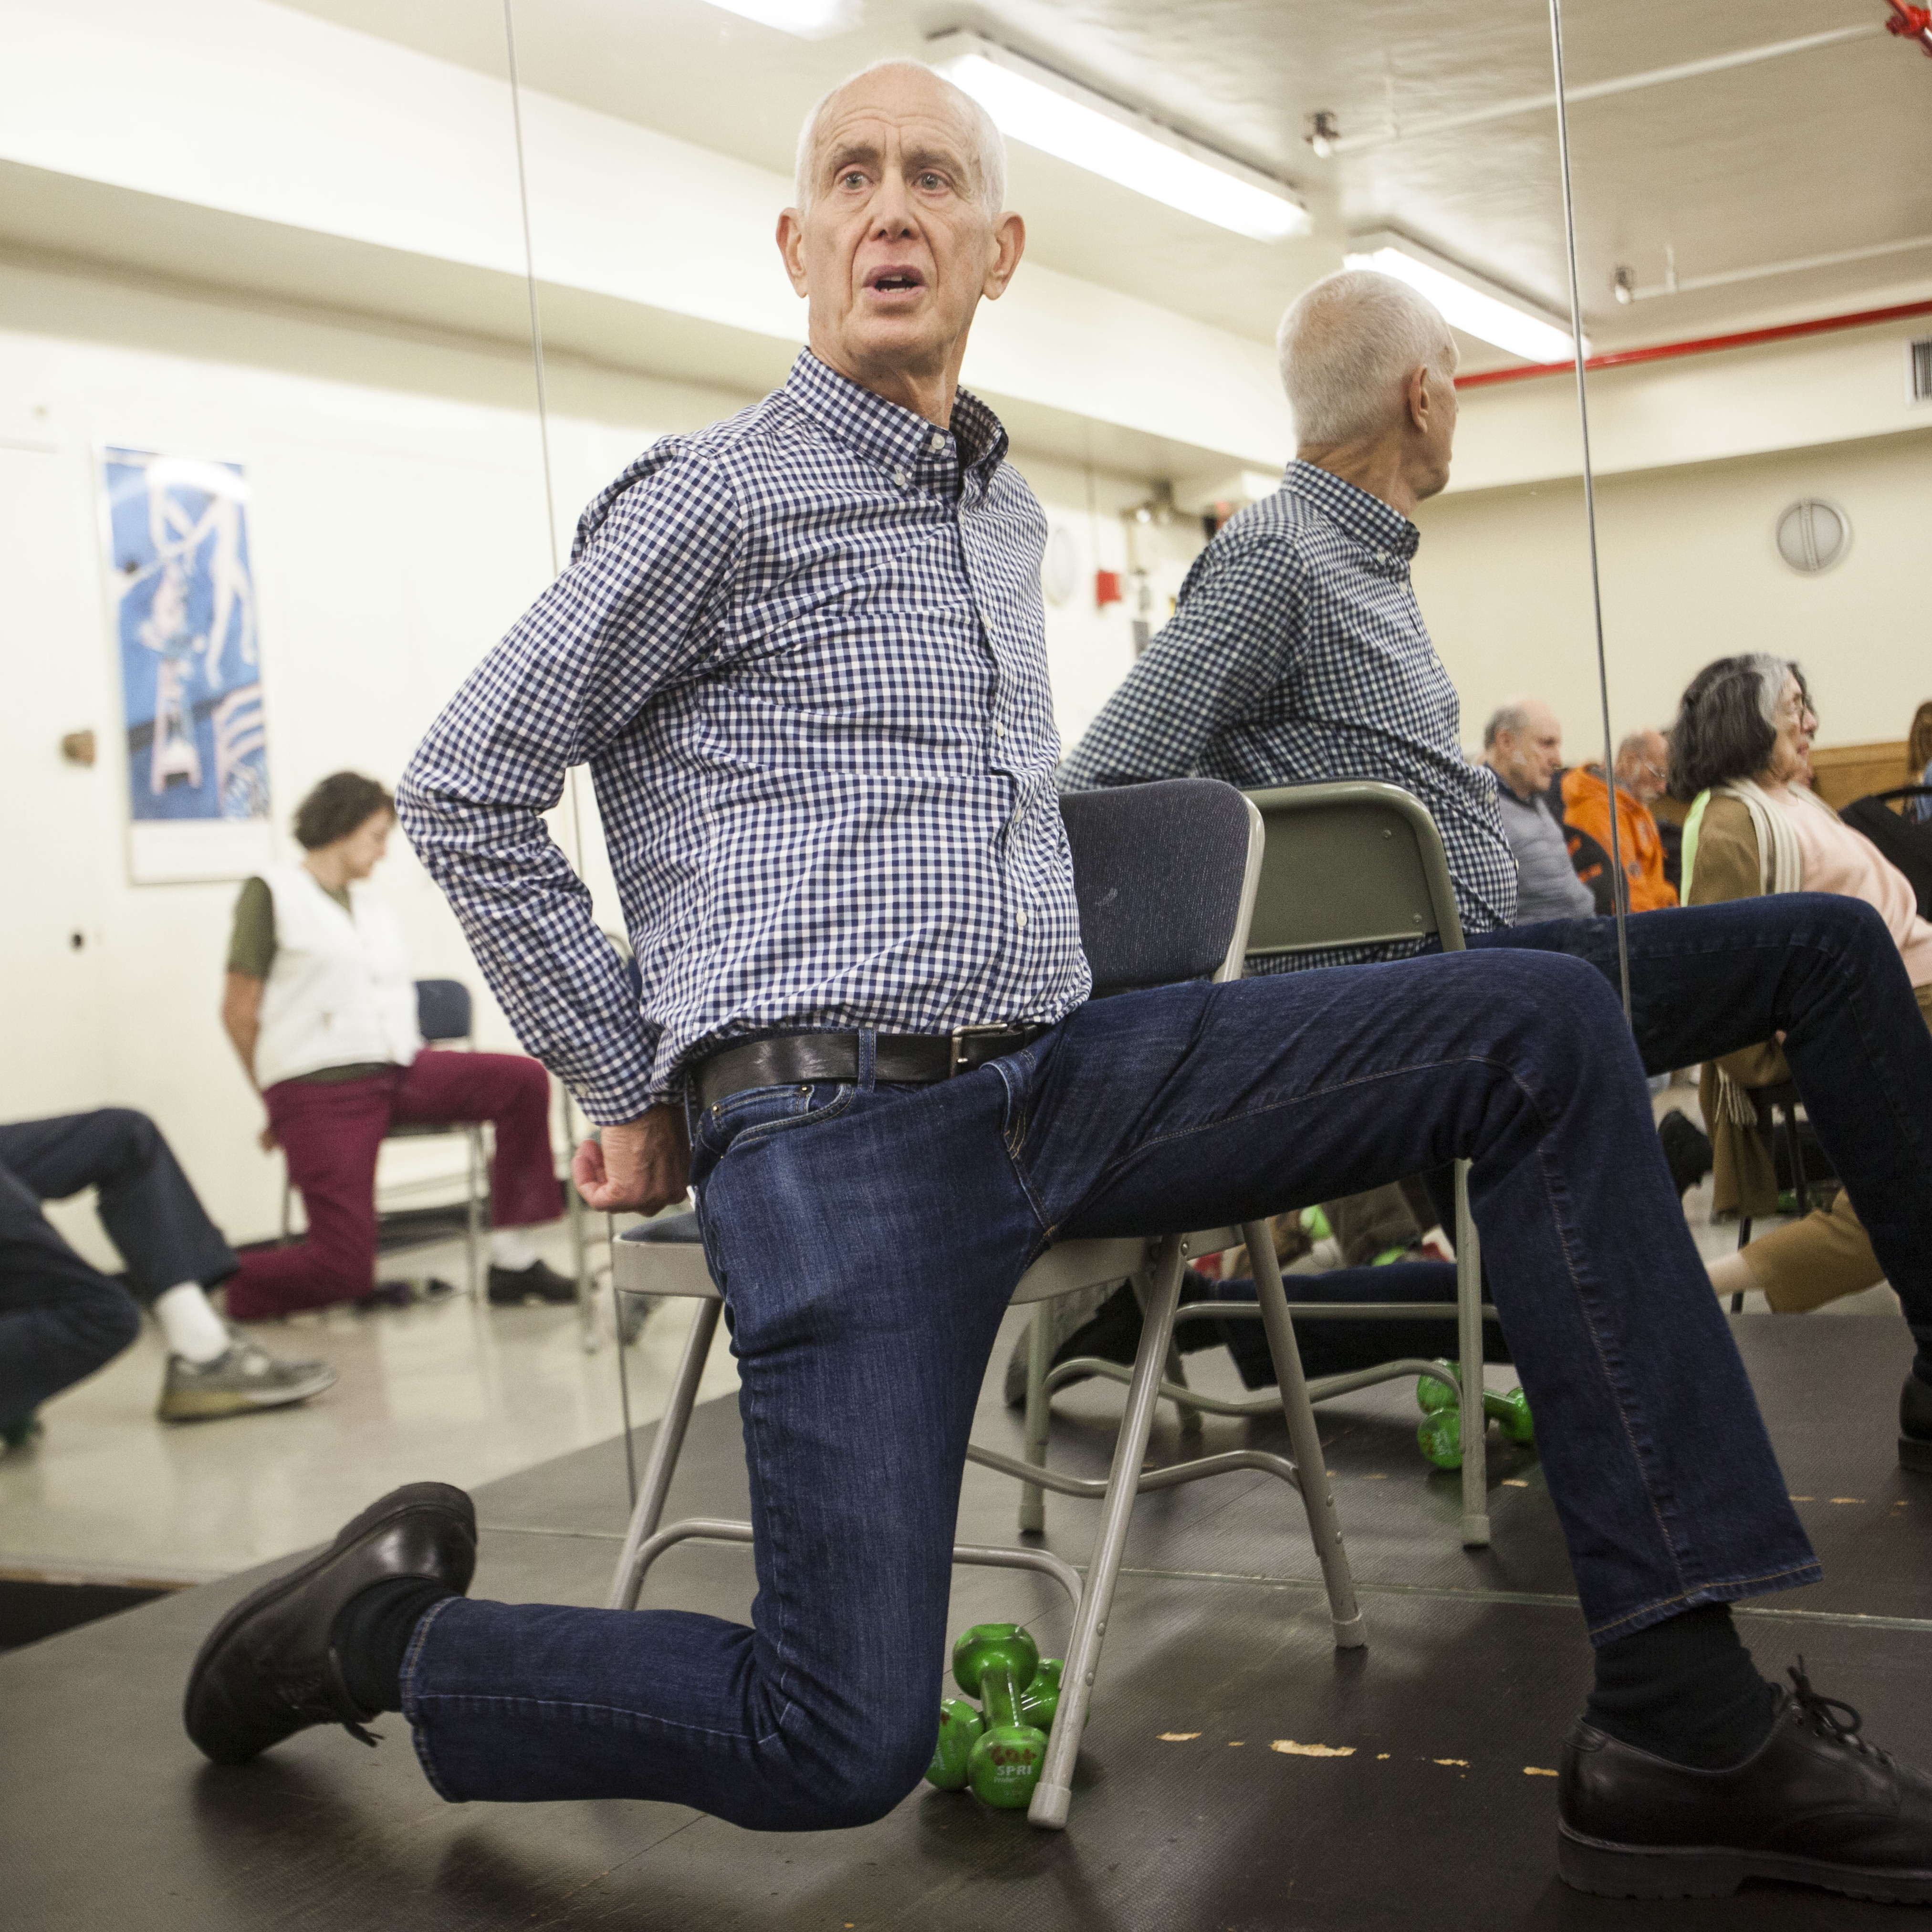 John David, 73, teaches an exercise class called PACE to seniors at the 92nd Street Y in New York City. The former TV producer says he has finally found his true calling.